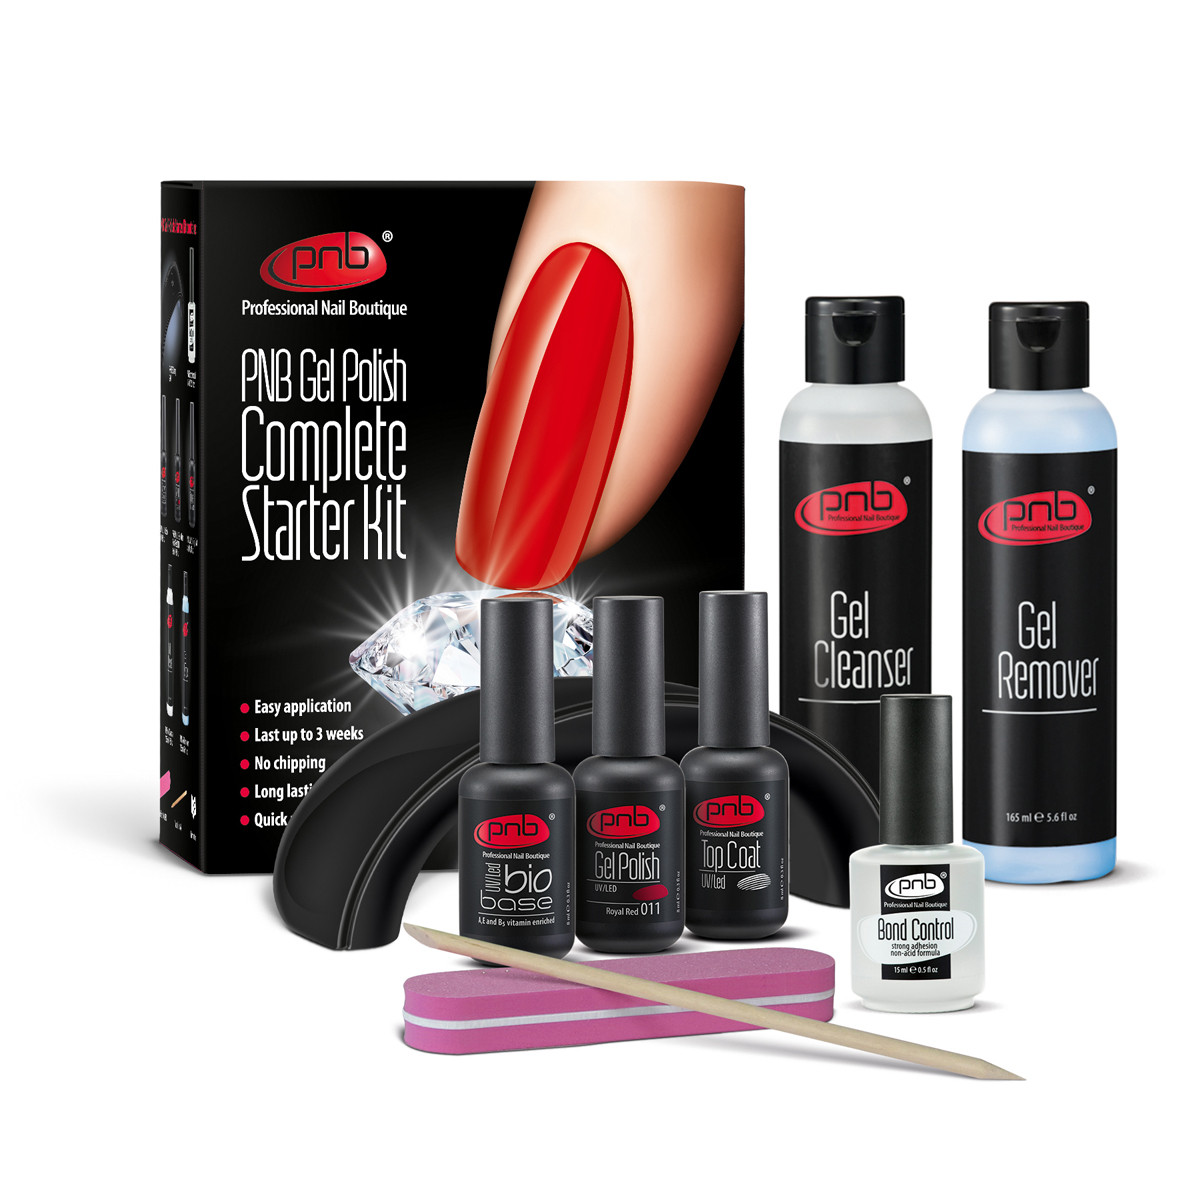 Стартовый набор PNB с LED лампой (PNB Complete Gel Polish starter Kit) - RichcoloR в Харькове